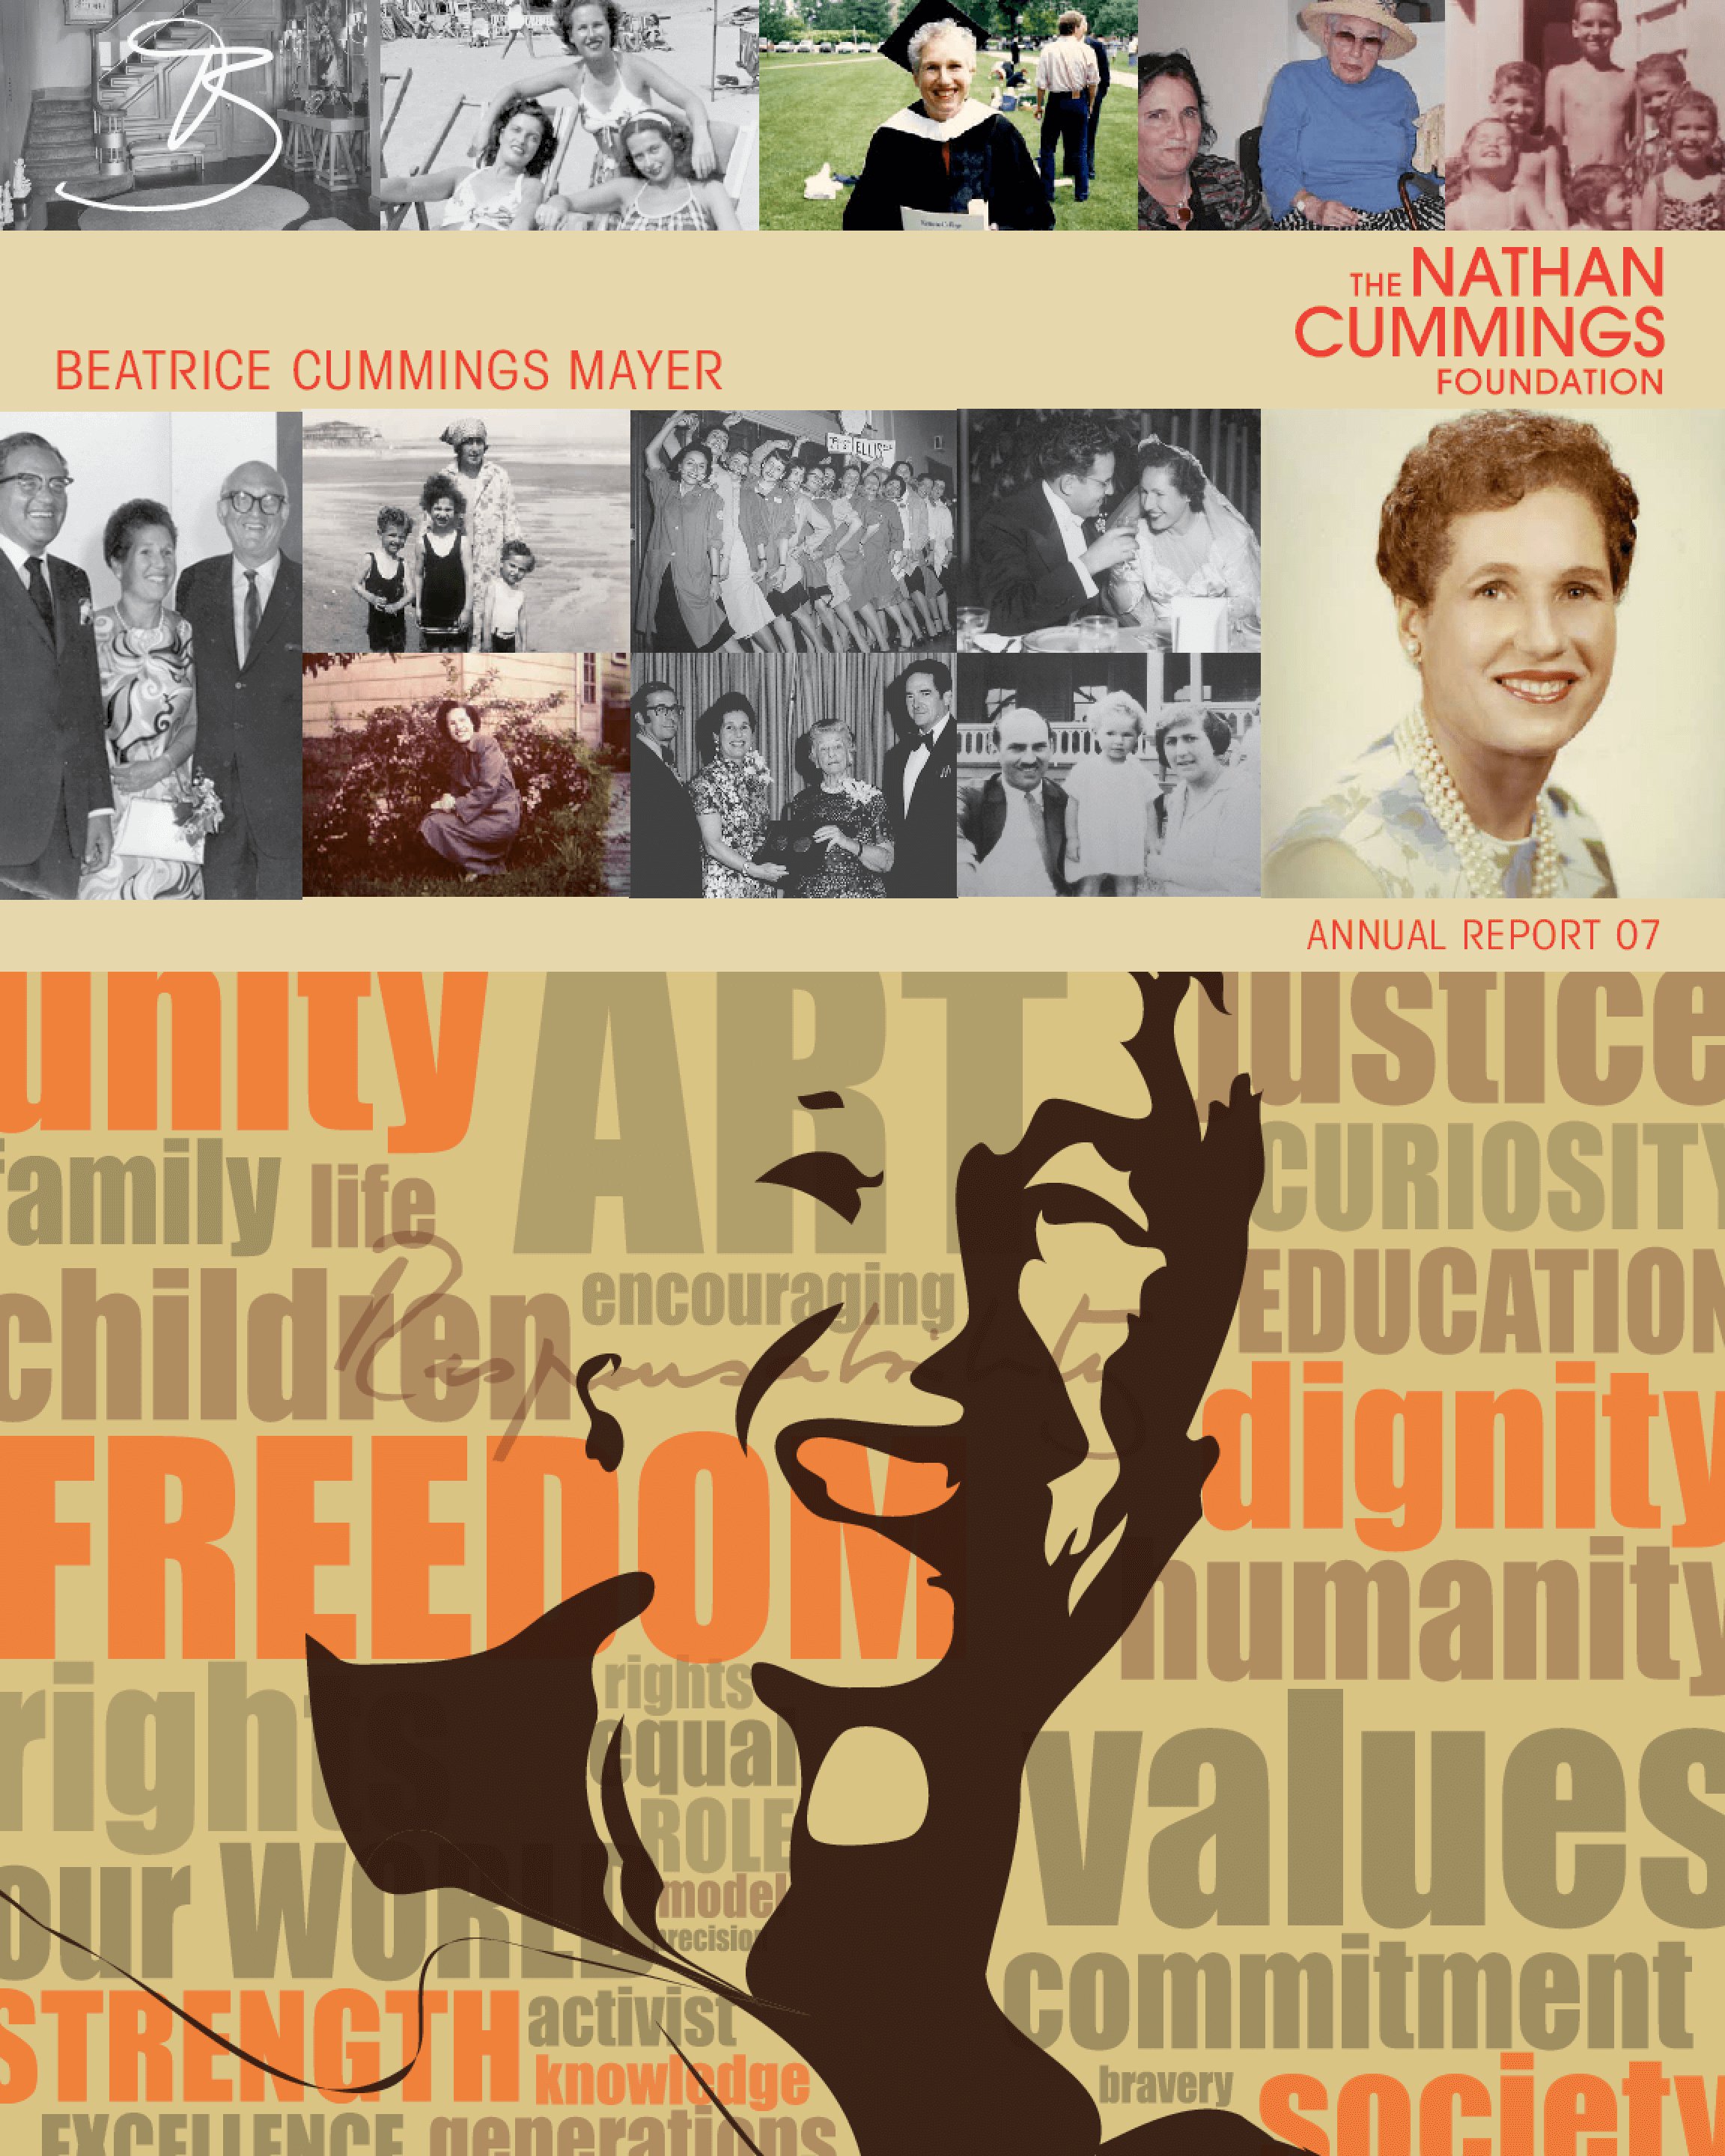 Nathan Cummings Foundation 2007 Annual Report